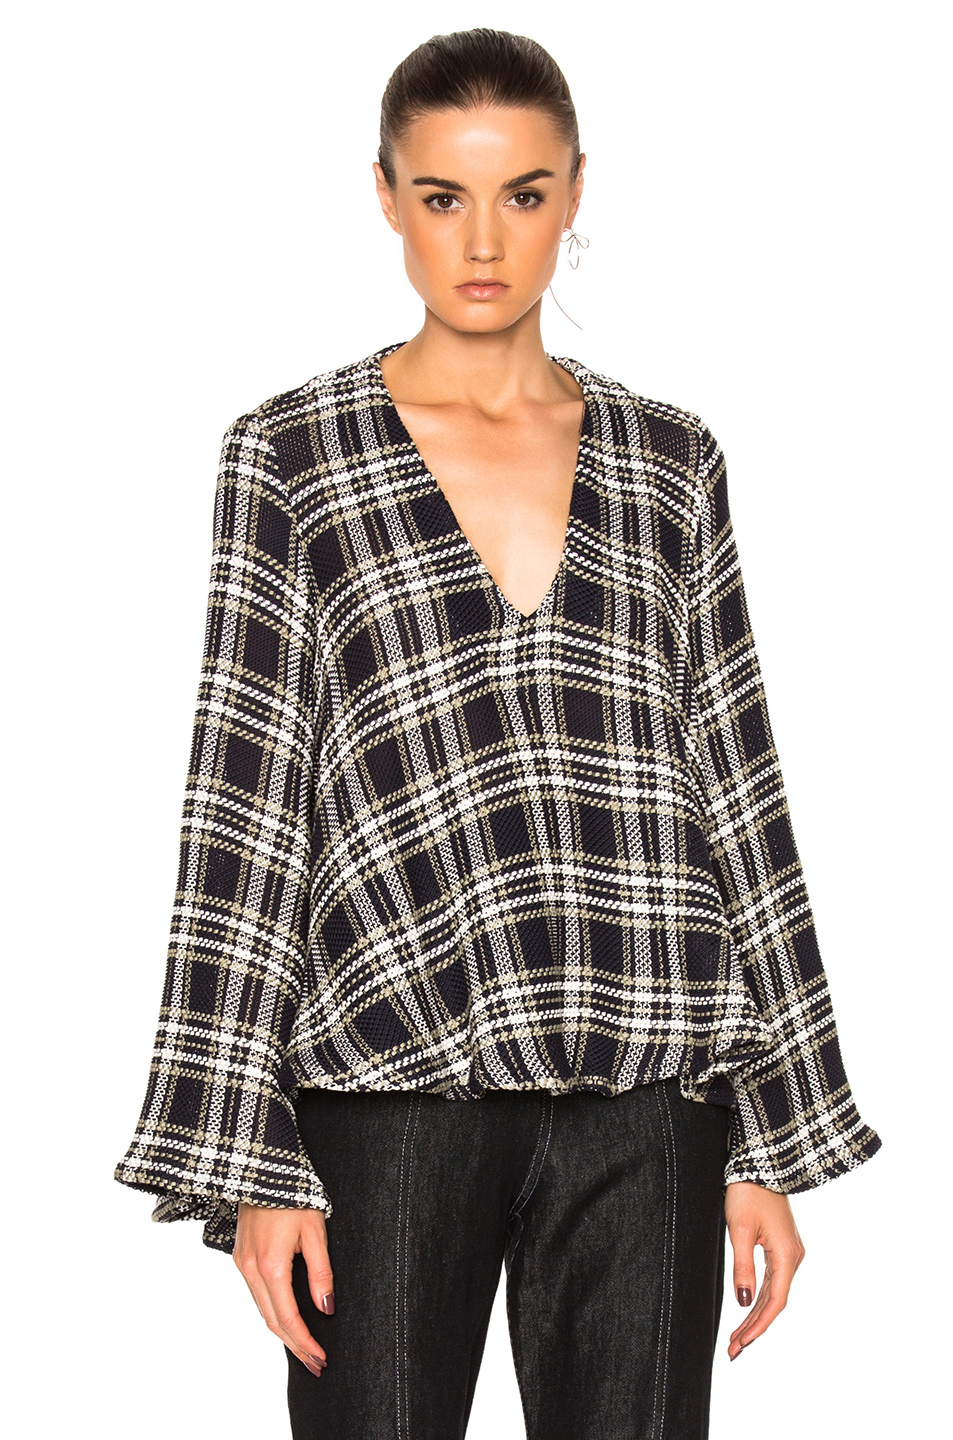 Beaufille Calypso Sweater in Blue,Checkered & Plaid,White